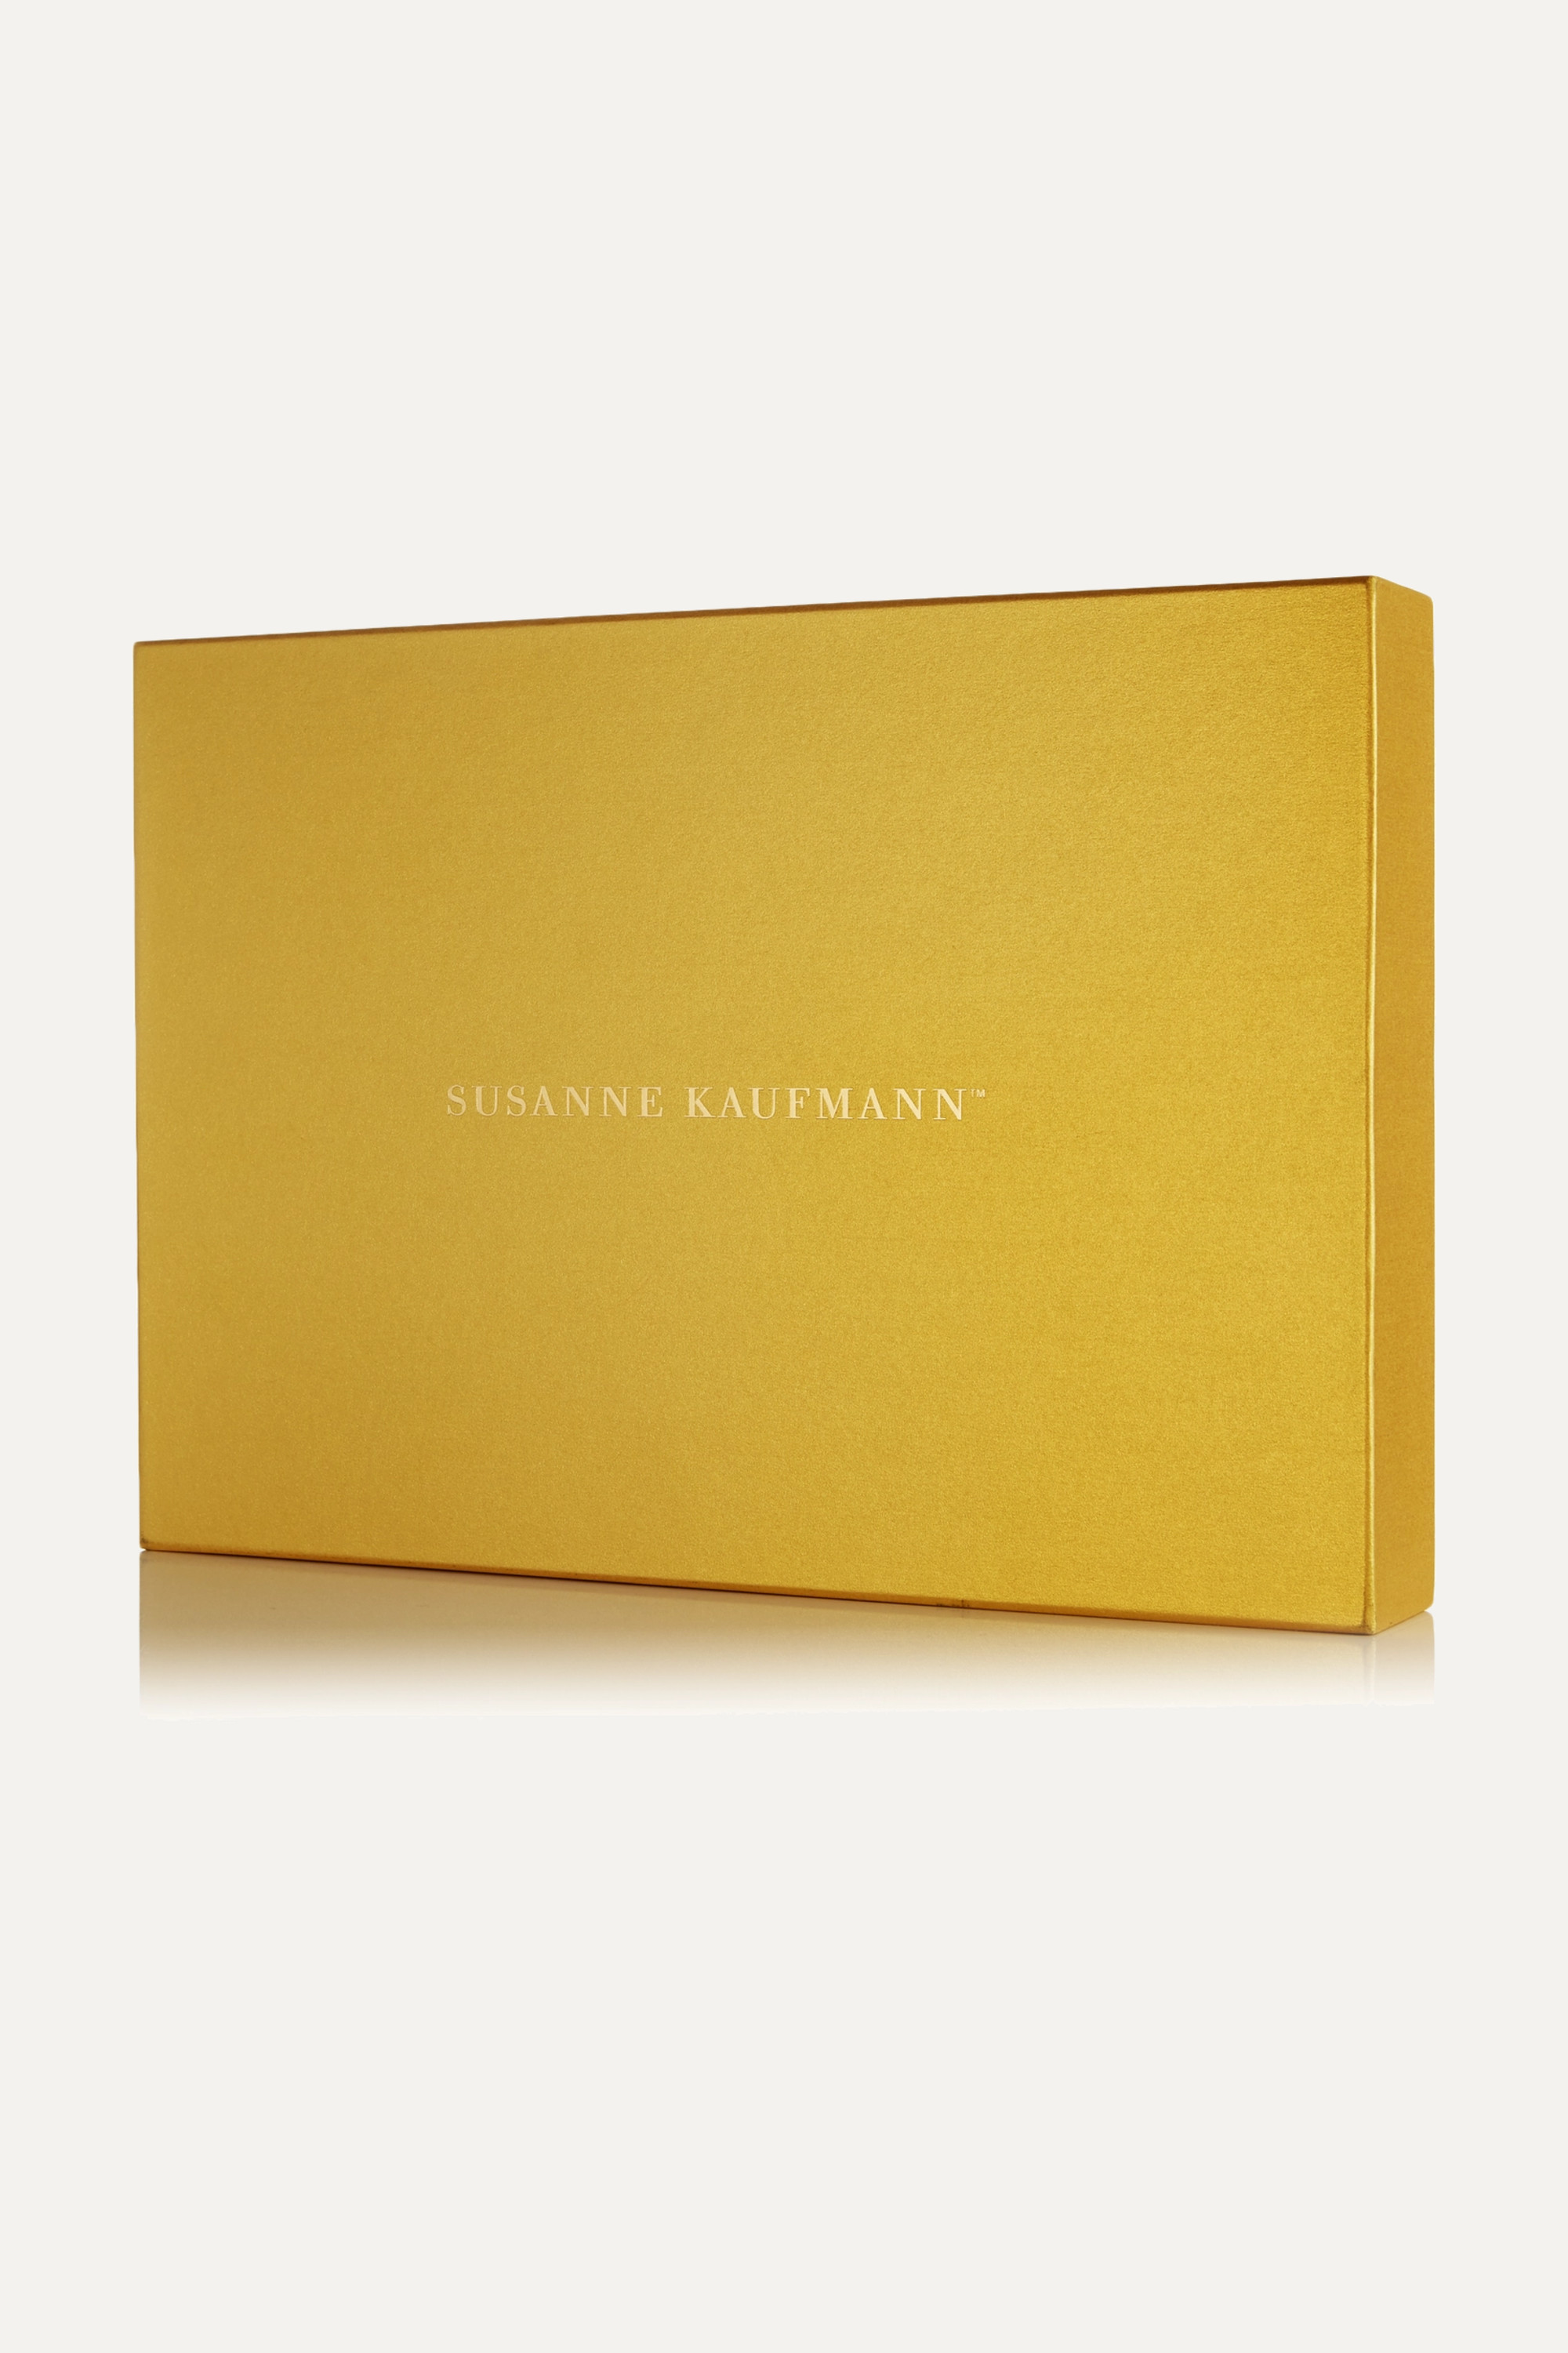 Susanne Kaufmann Gold Holiday Calendar